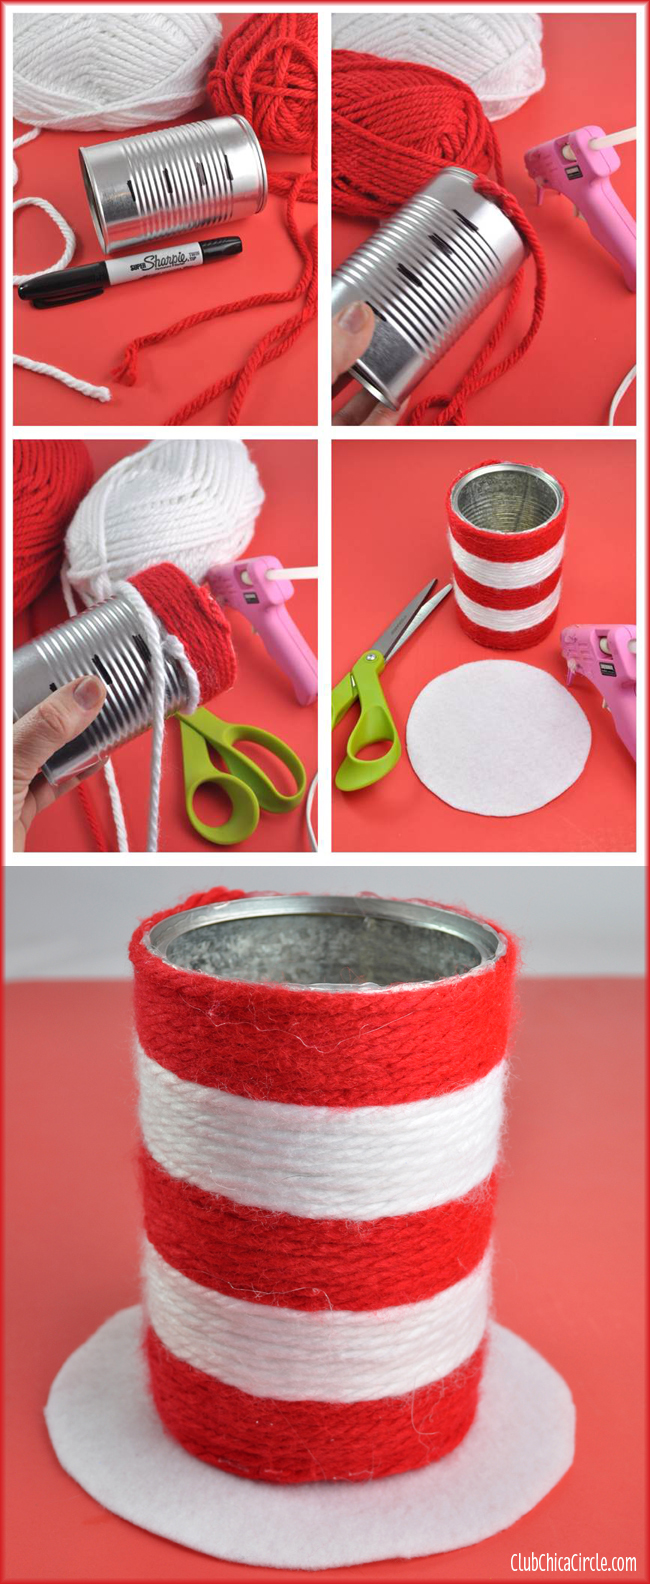 Dr Suess Wrapped Yarn Hat Pencil Cup Craft DIY